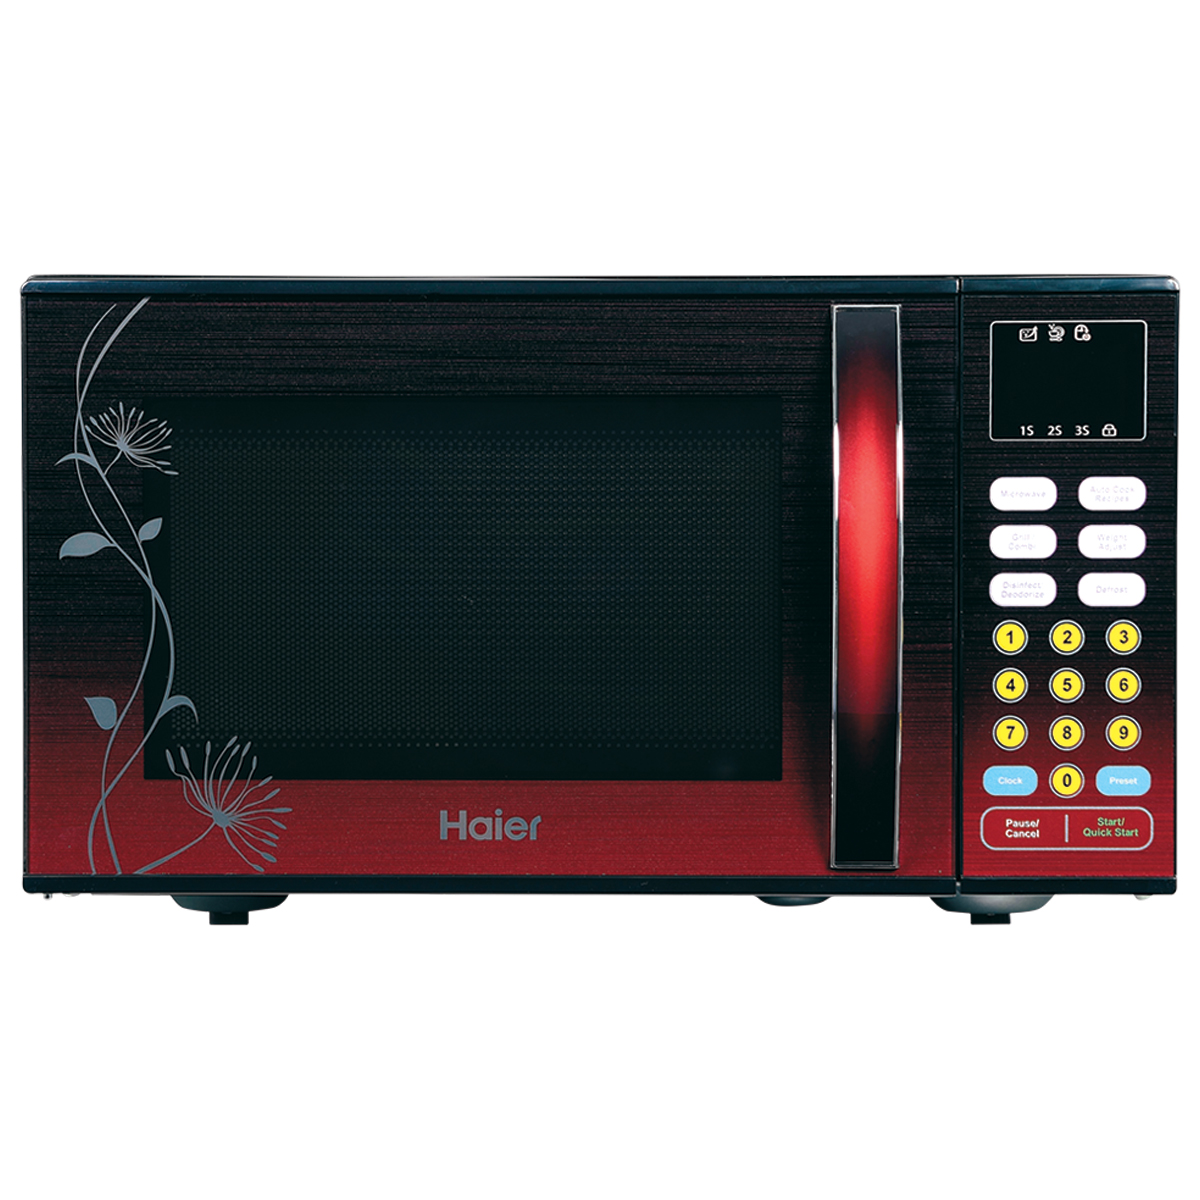 Energy Efficient Microwave Oven Bestmicrowave